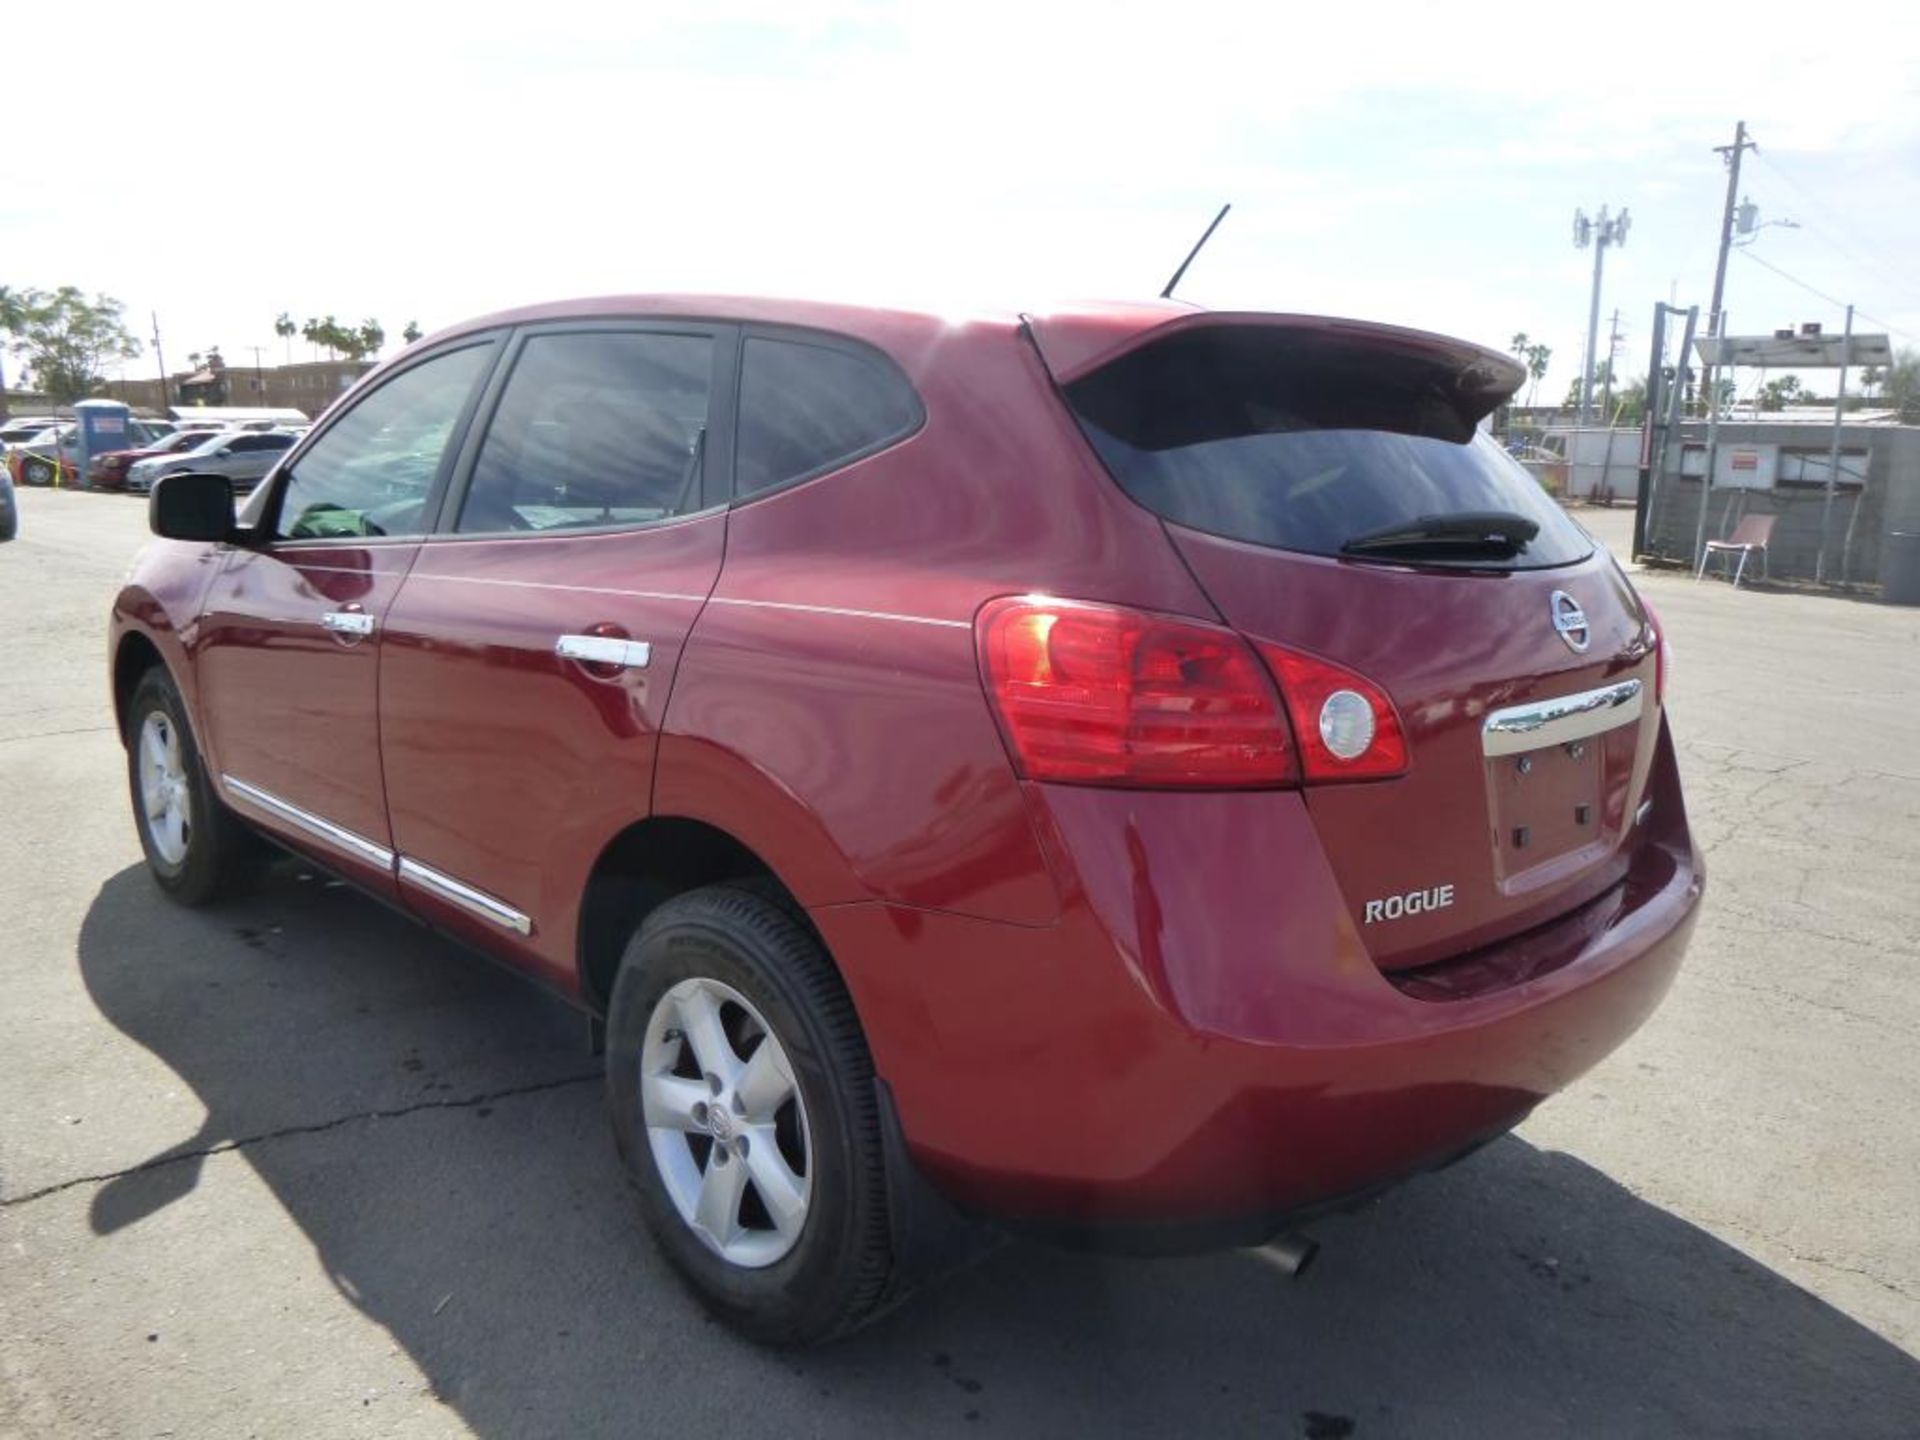 2012 Nissan Rogue - Image 2 of 14